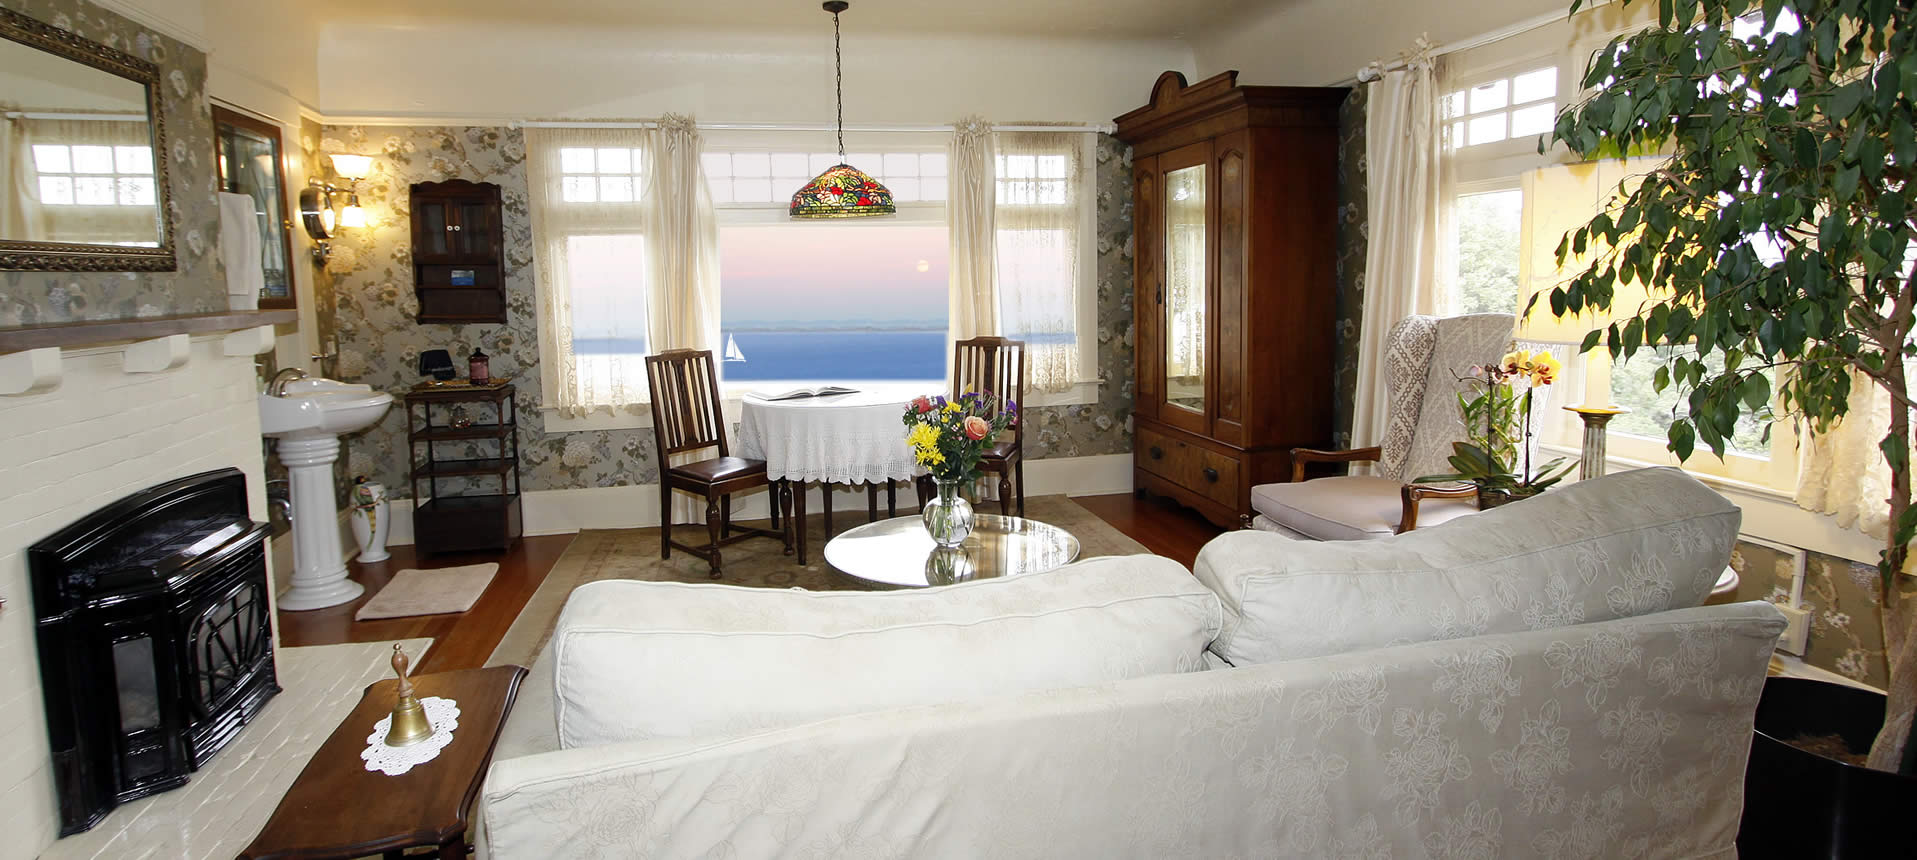 jabberwock inn monterey guest rooms with ocean views